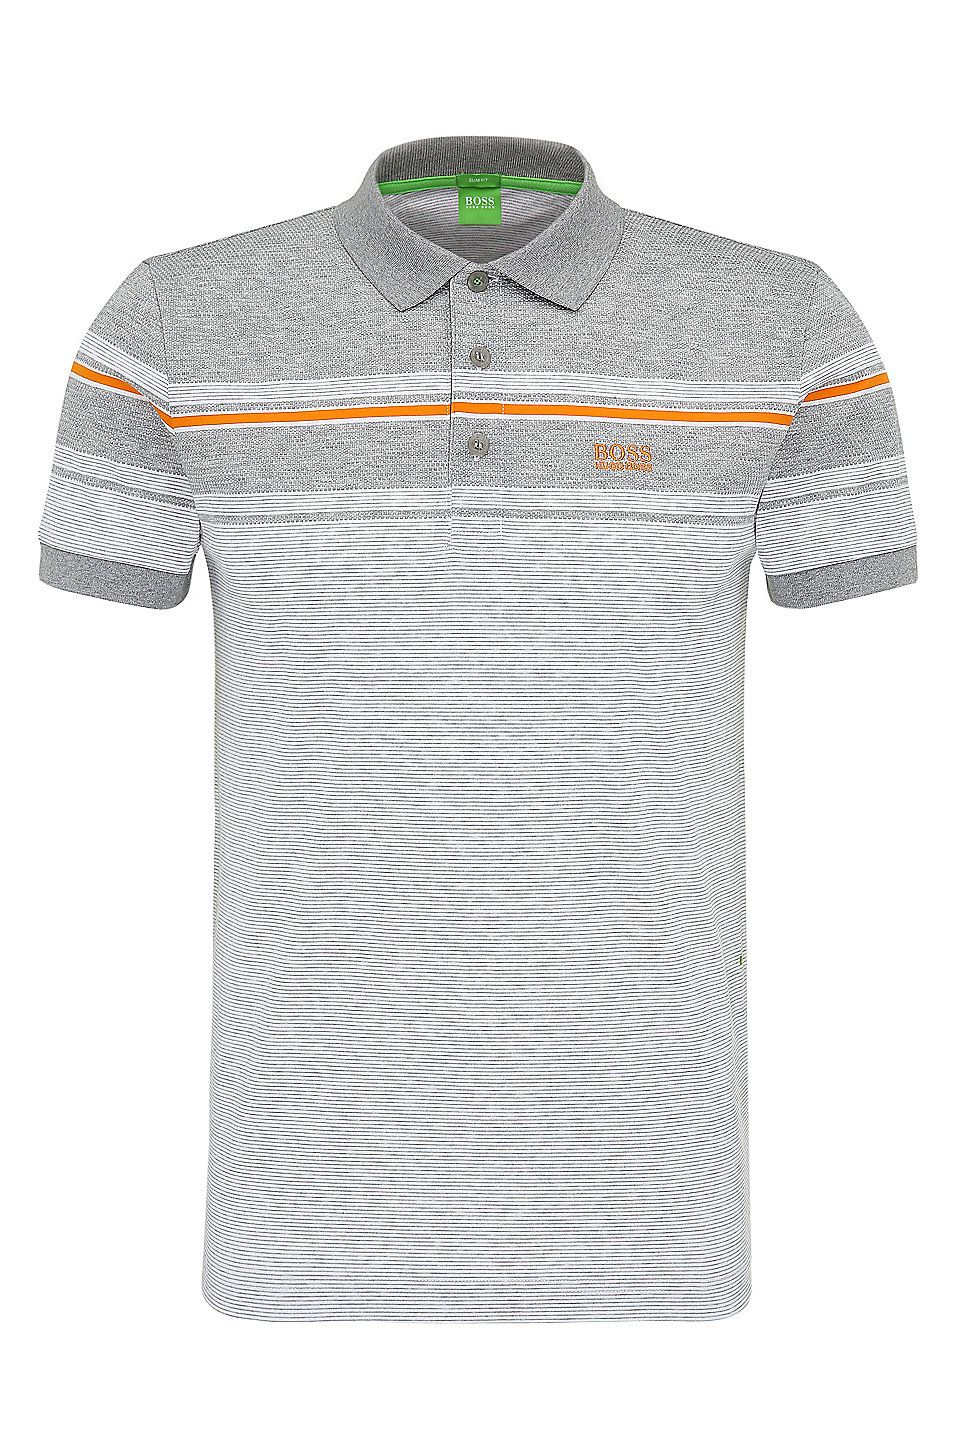 2c18a712 'Paule' | Slim Fit, Striped Cotton Polo Shirt White from BOSS Green for Men  for $108.99 in the official HUGO BOSS Online Store free shipping